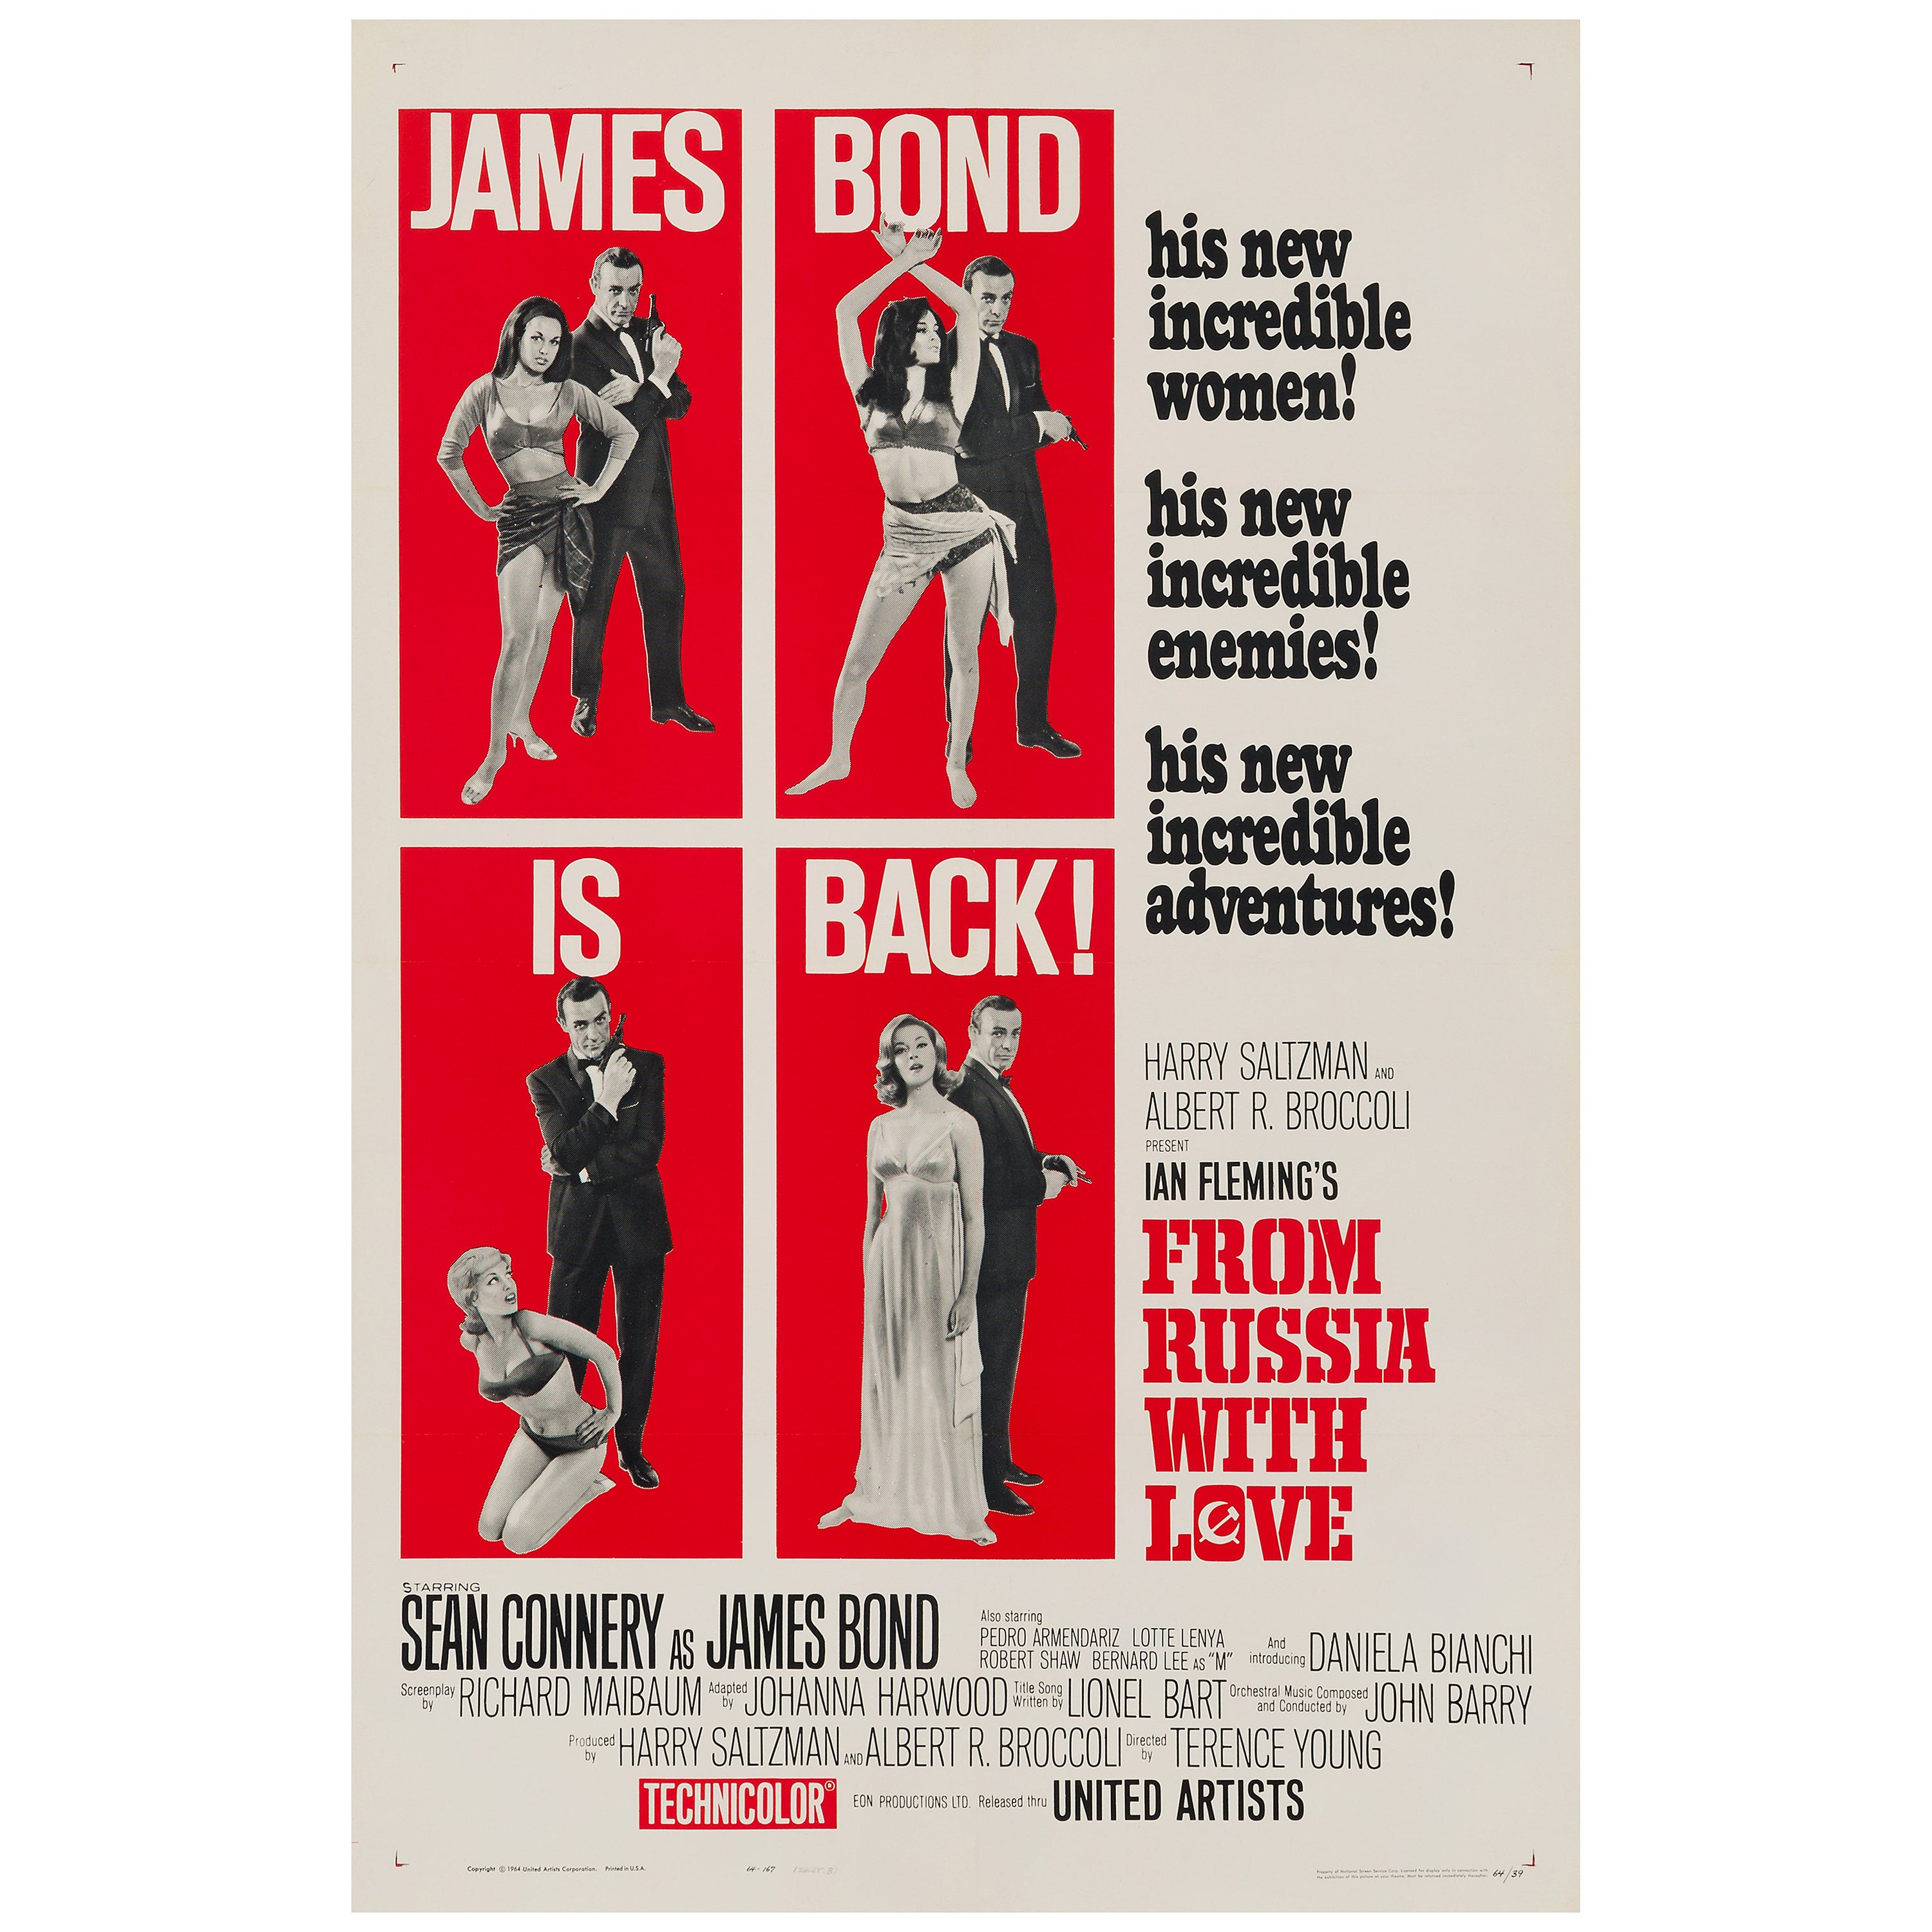 James Bond 'From Russia with Love' Original US One Sheet Movie Poster, 1964